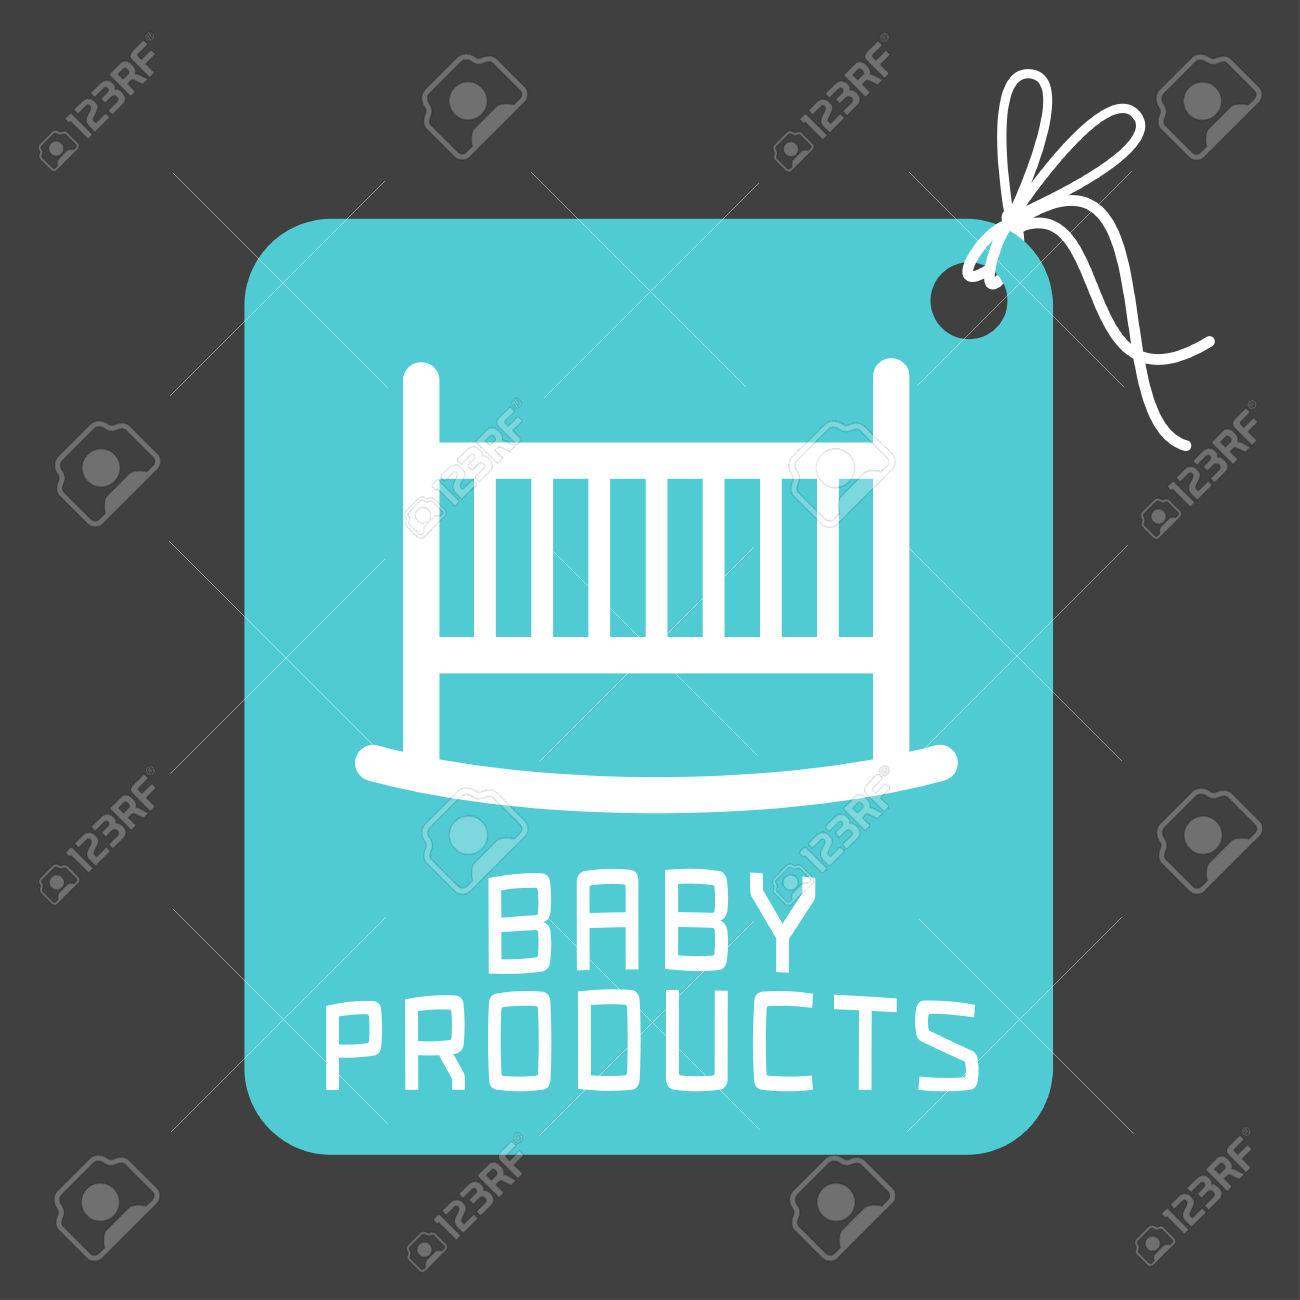 e7427383d Baby Products Vector Logo. Emblem With A Cute Crib For A Shop ...